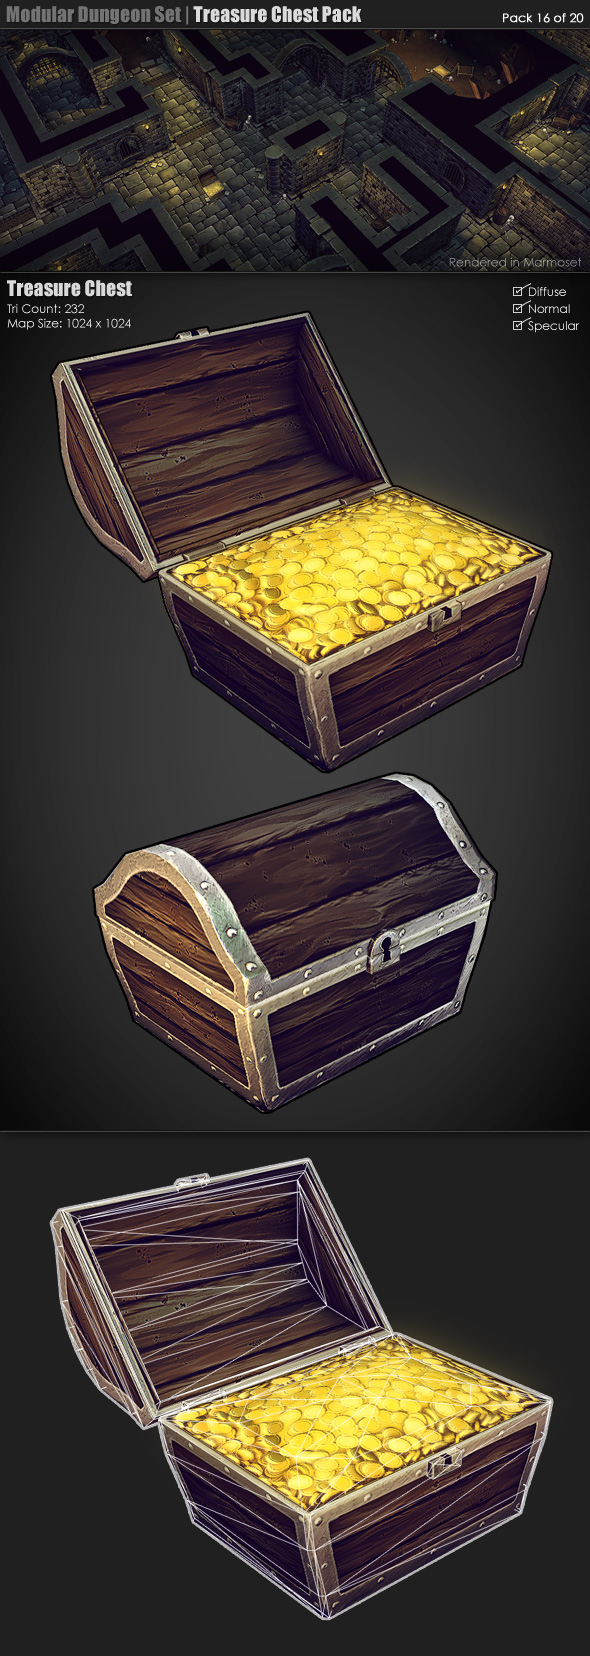 Modular Dungeon Set|Treasure Chest Pack (16 of 20) - 3DOcean Item for Sale